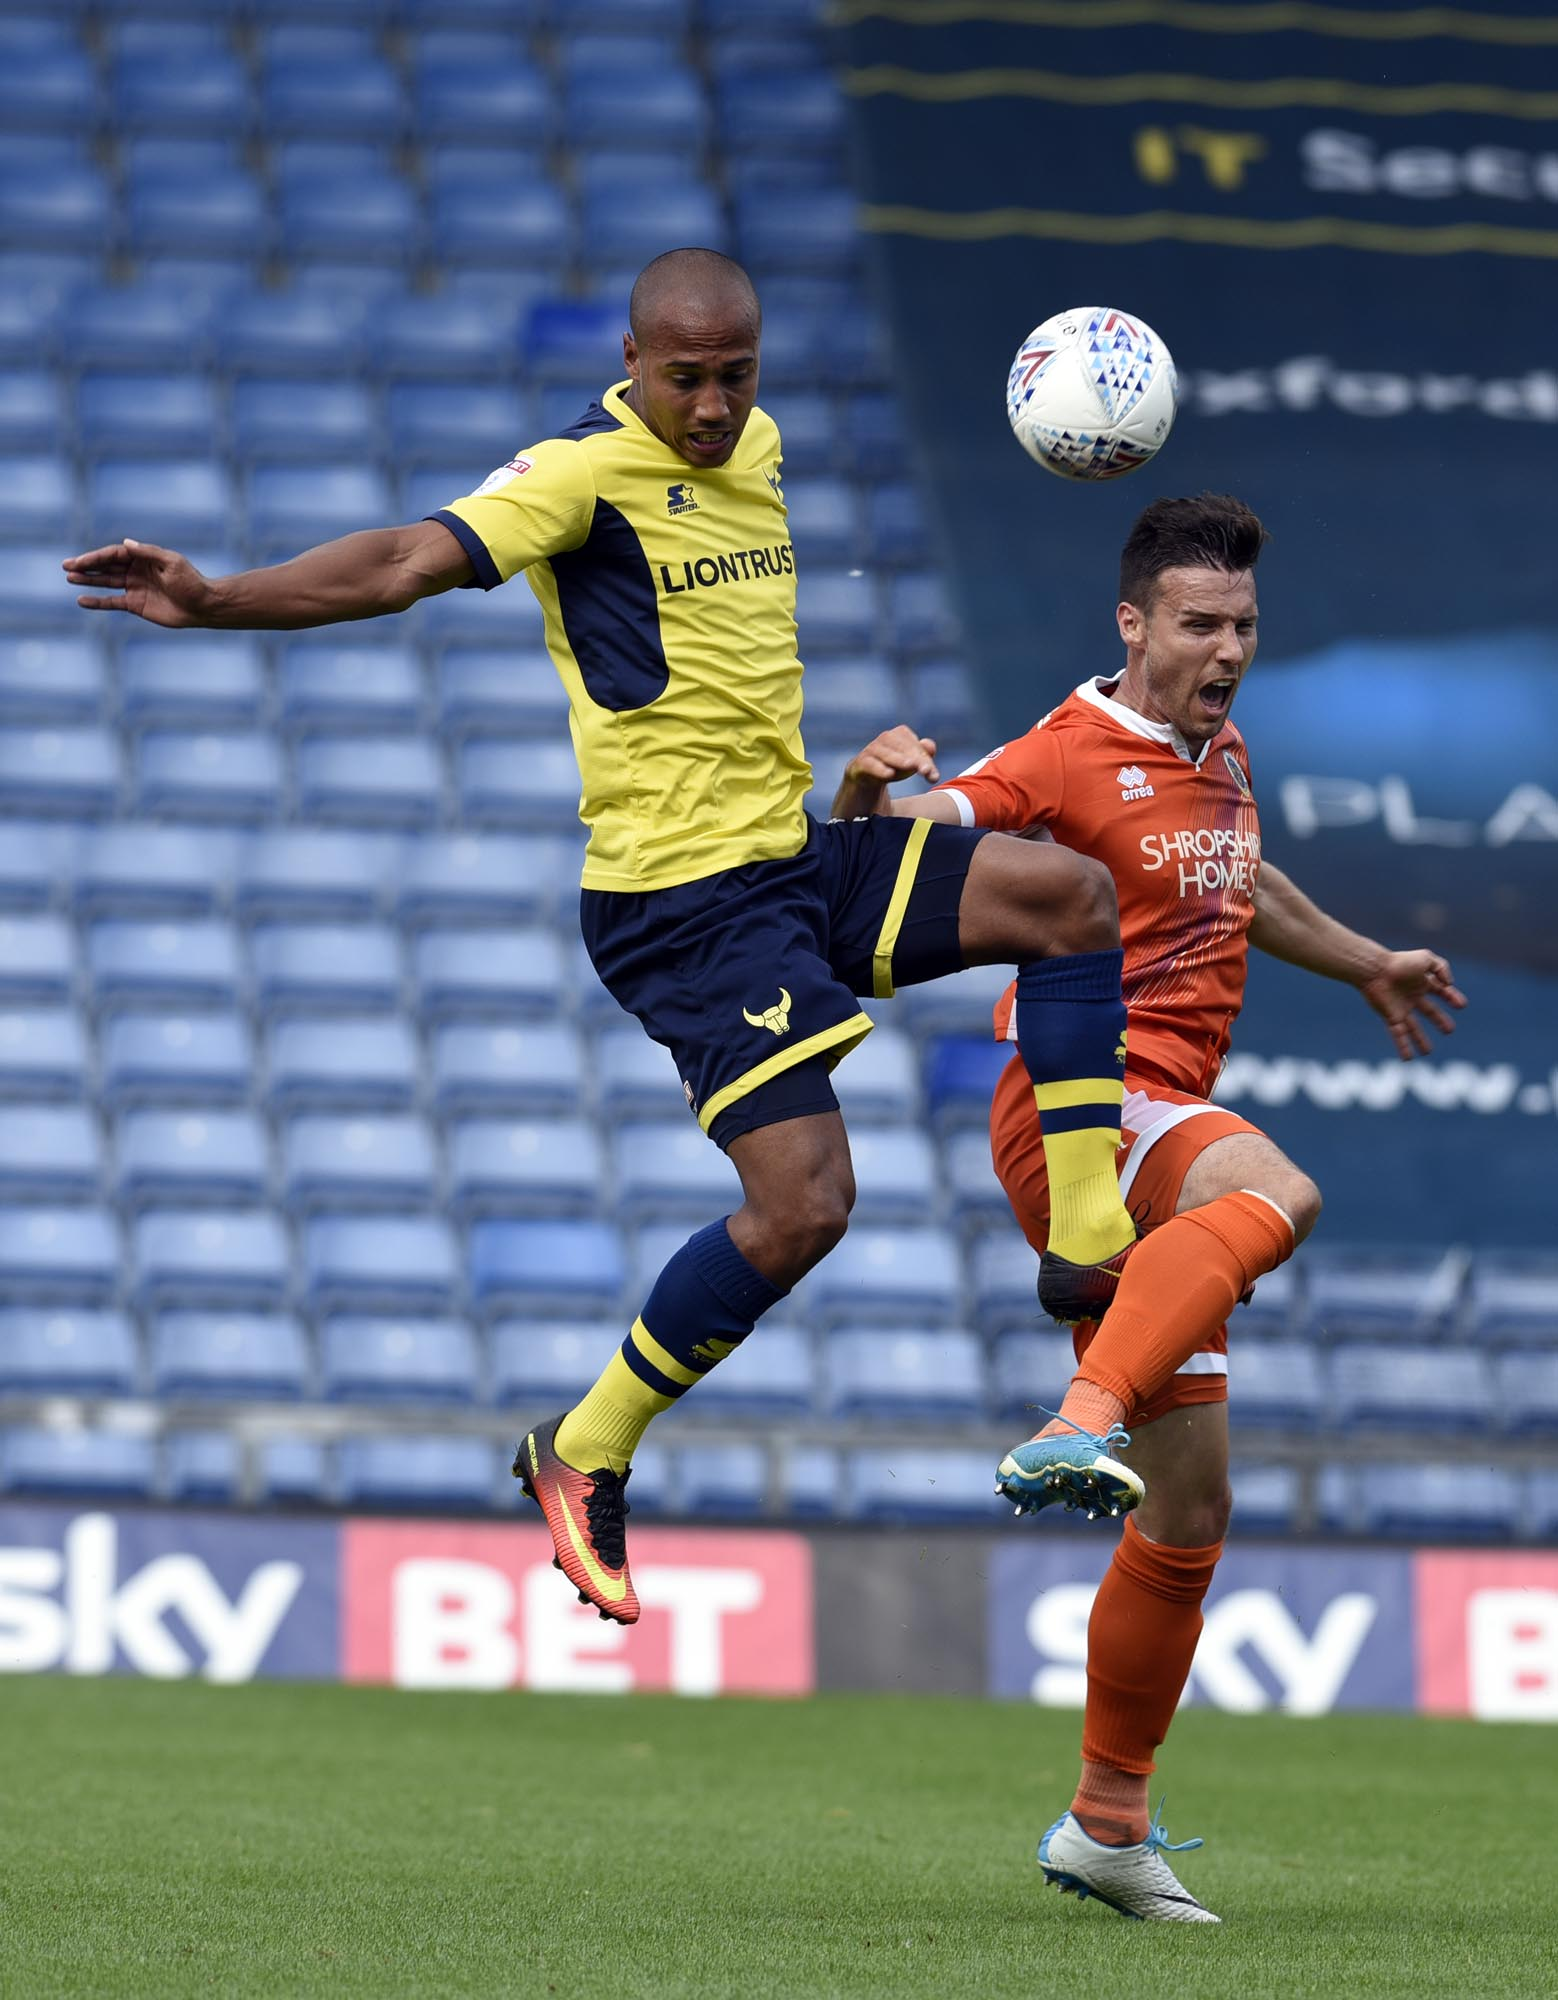 Oxford United's Gino van Kessel battles for the ball against Shrewsbury Town Picture: David Fleming